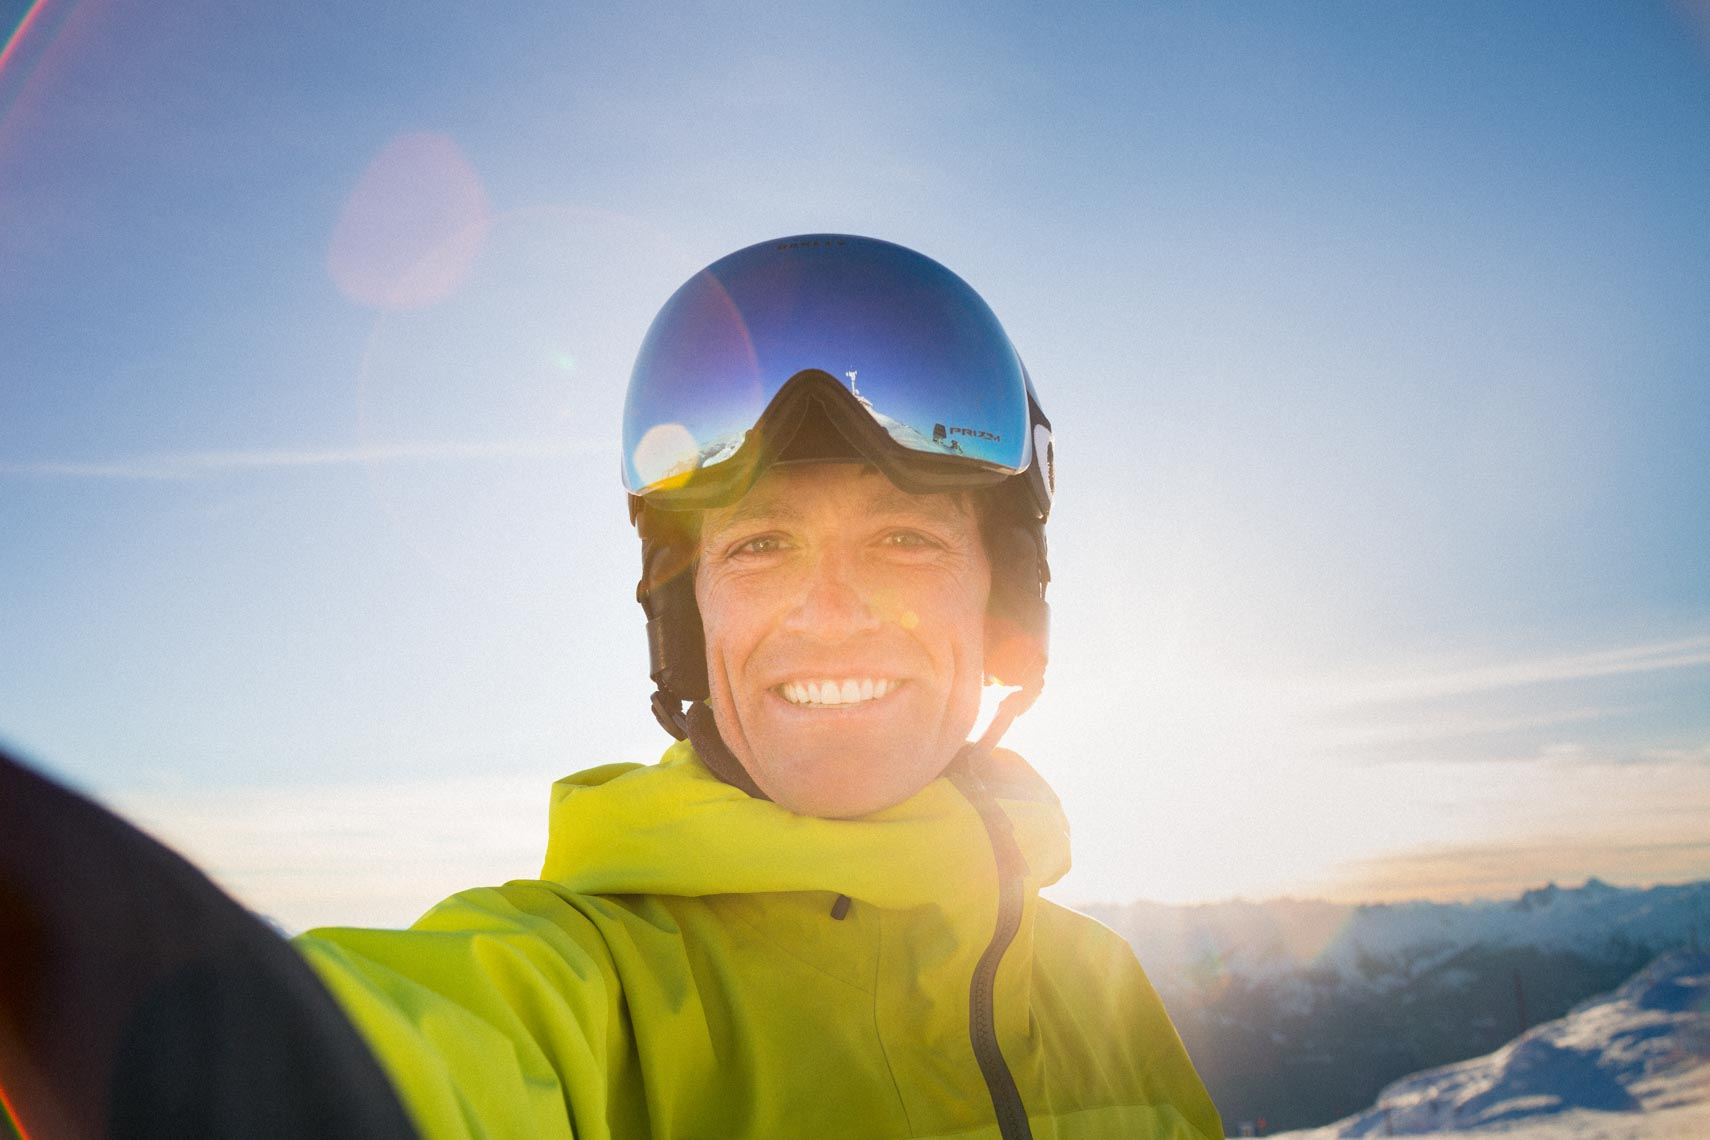 Smiling skier in Whistler BC by lifestyle and tourism photographer